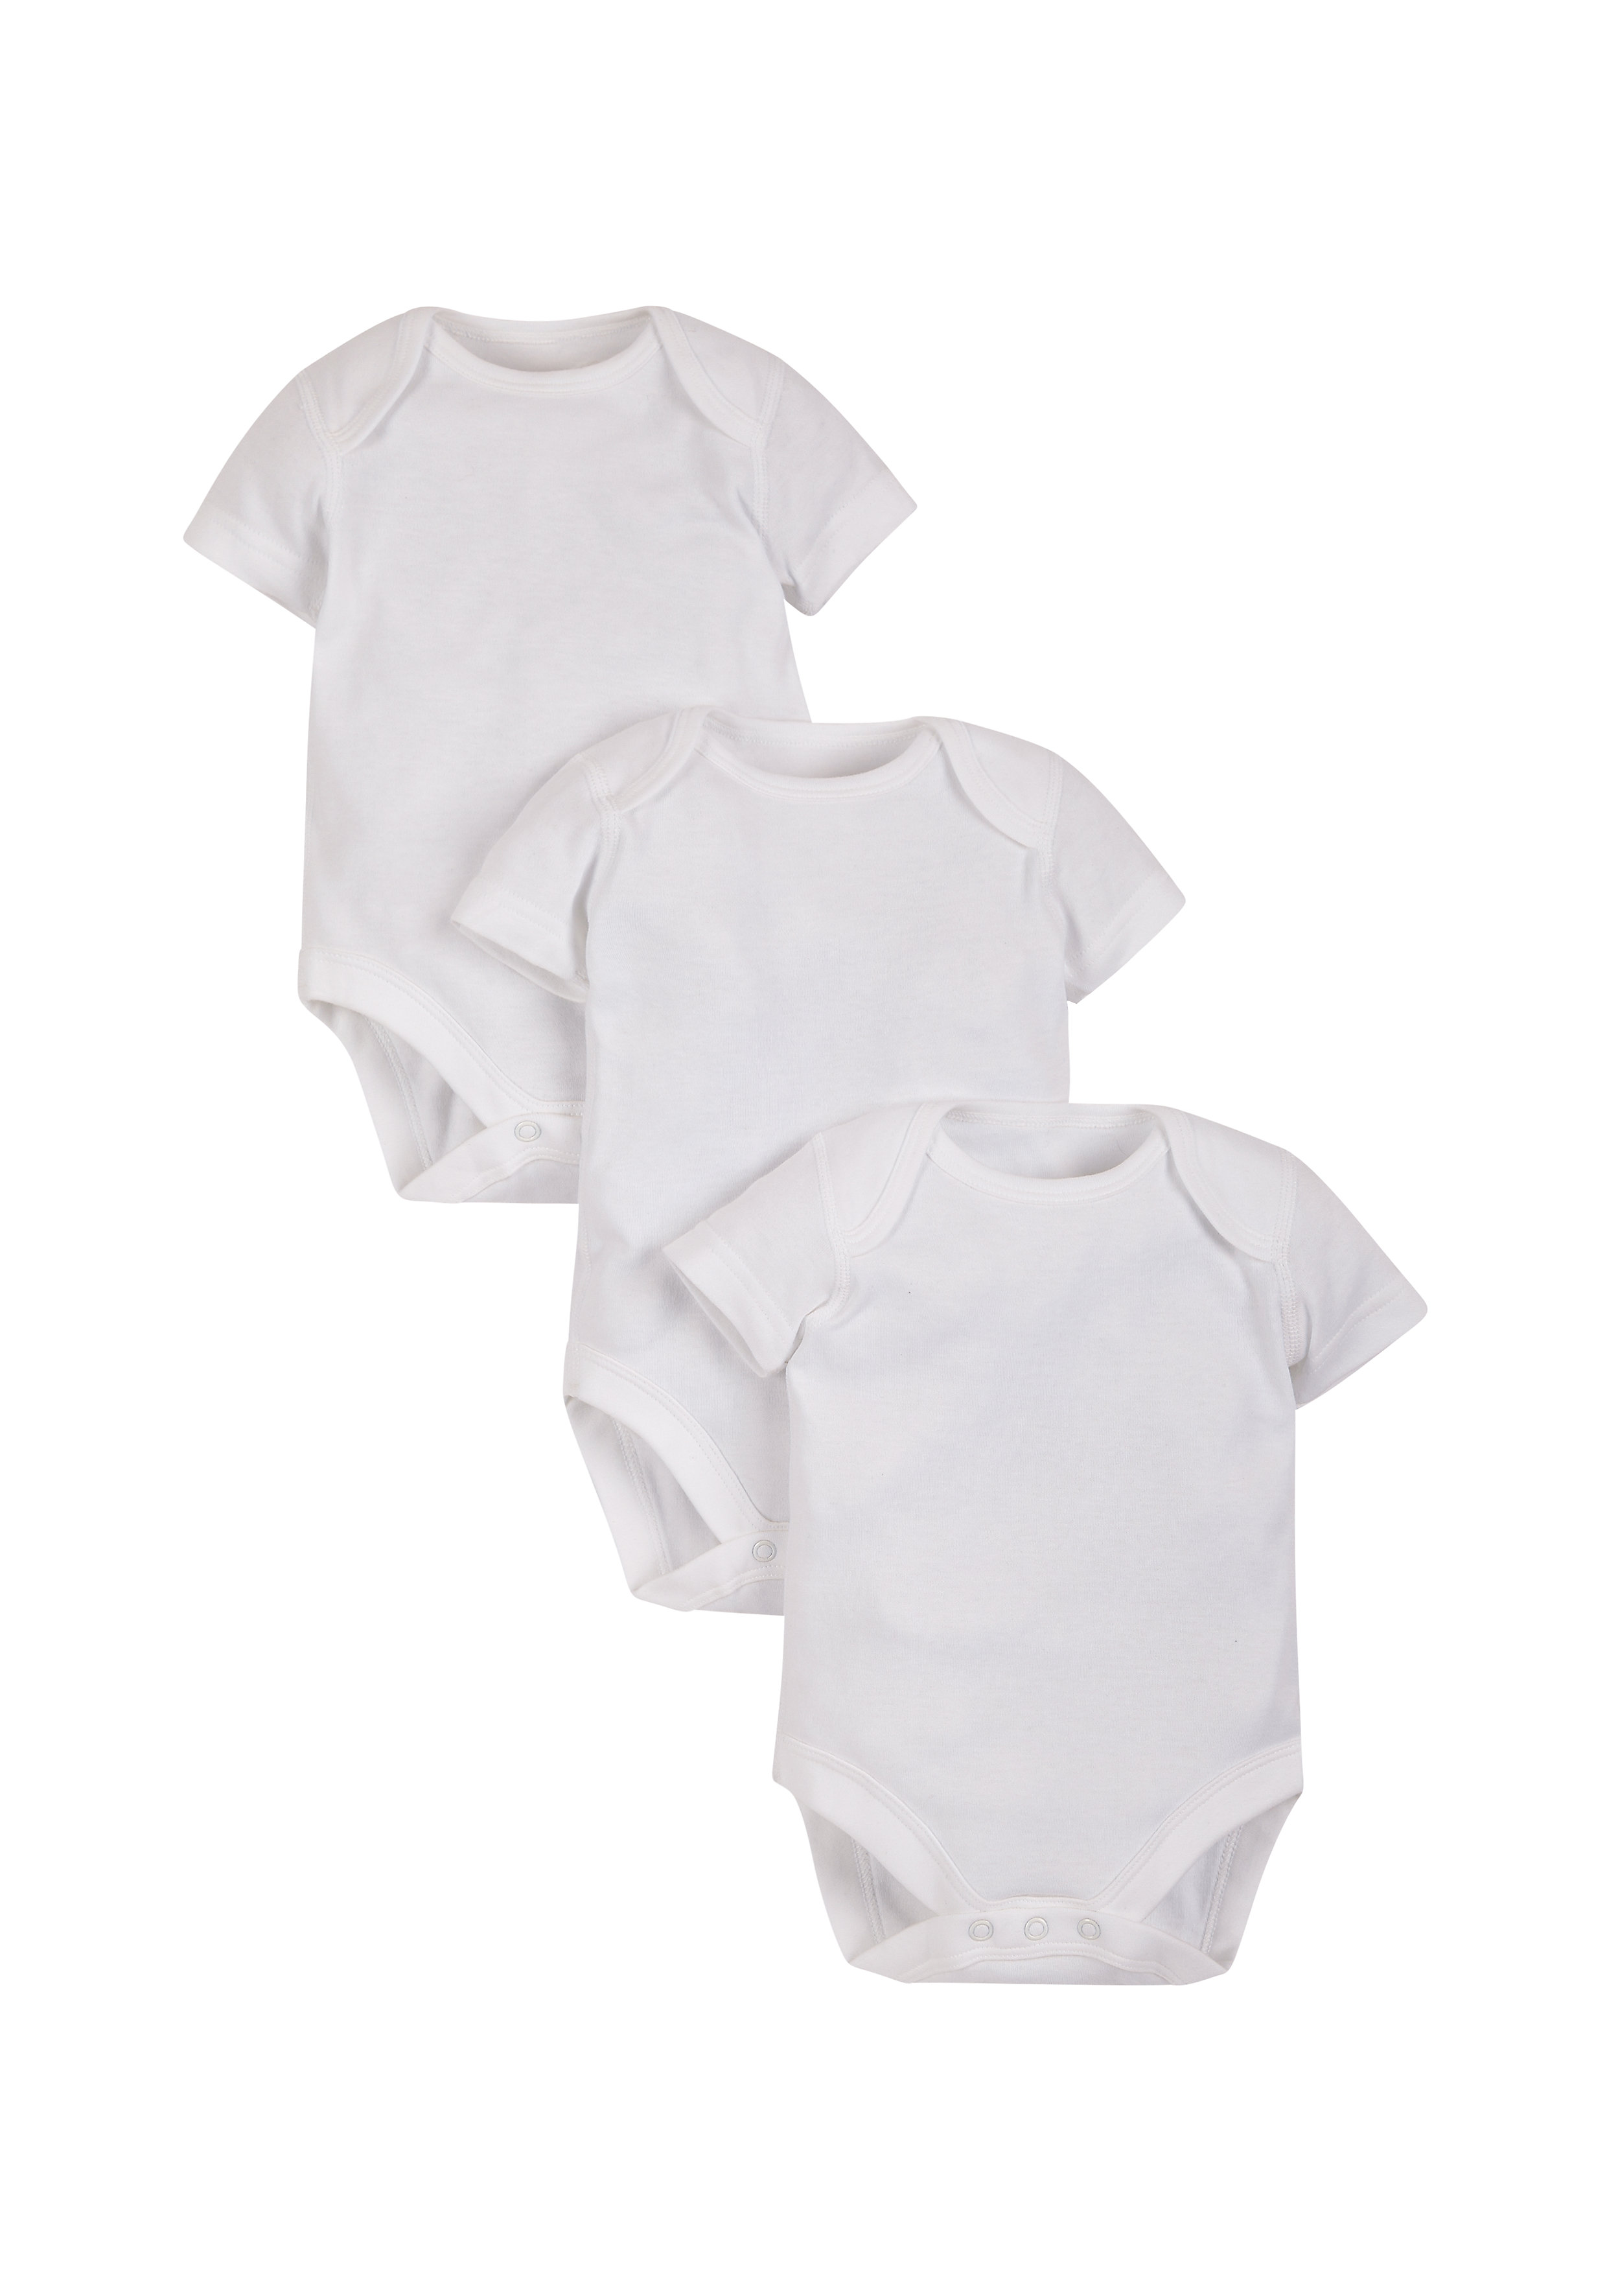 Mothercare | Unisex Bodysuits - Pack Of 3 - White